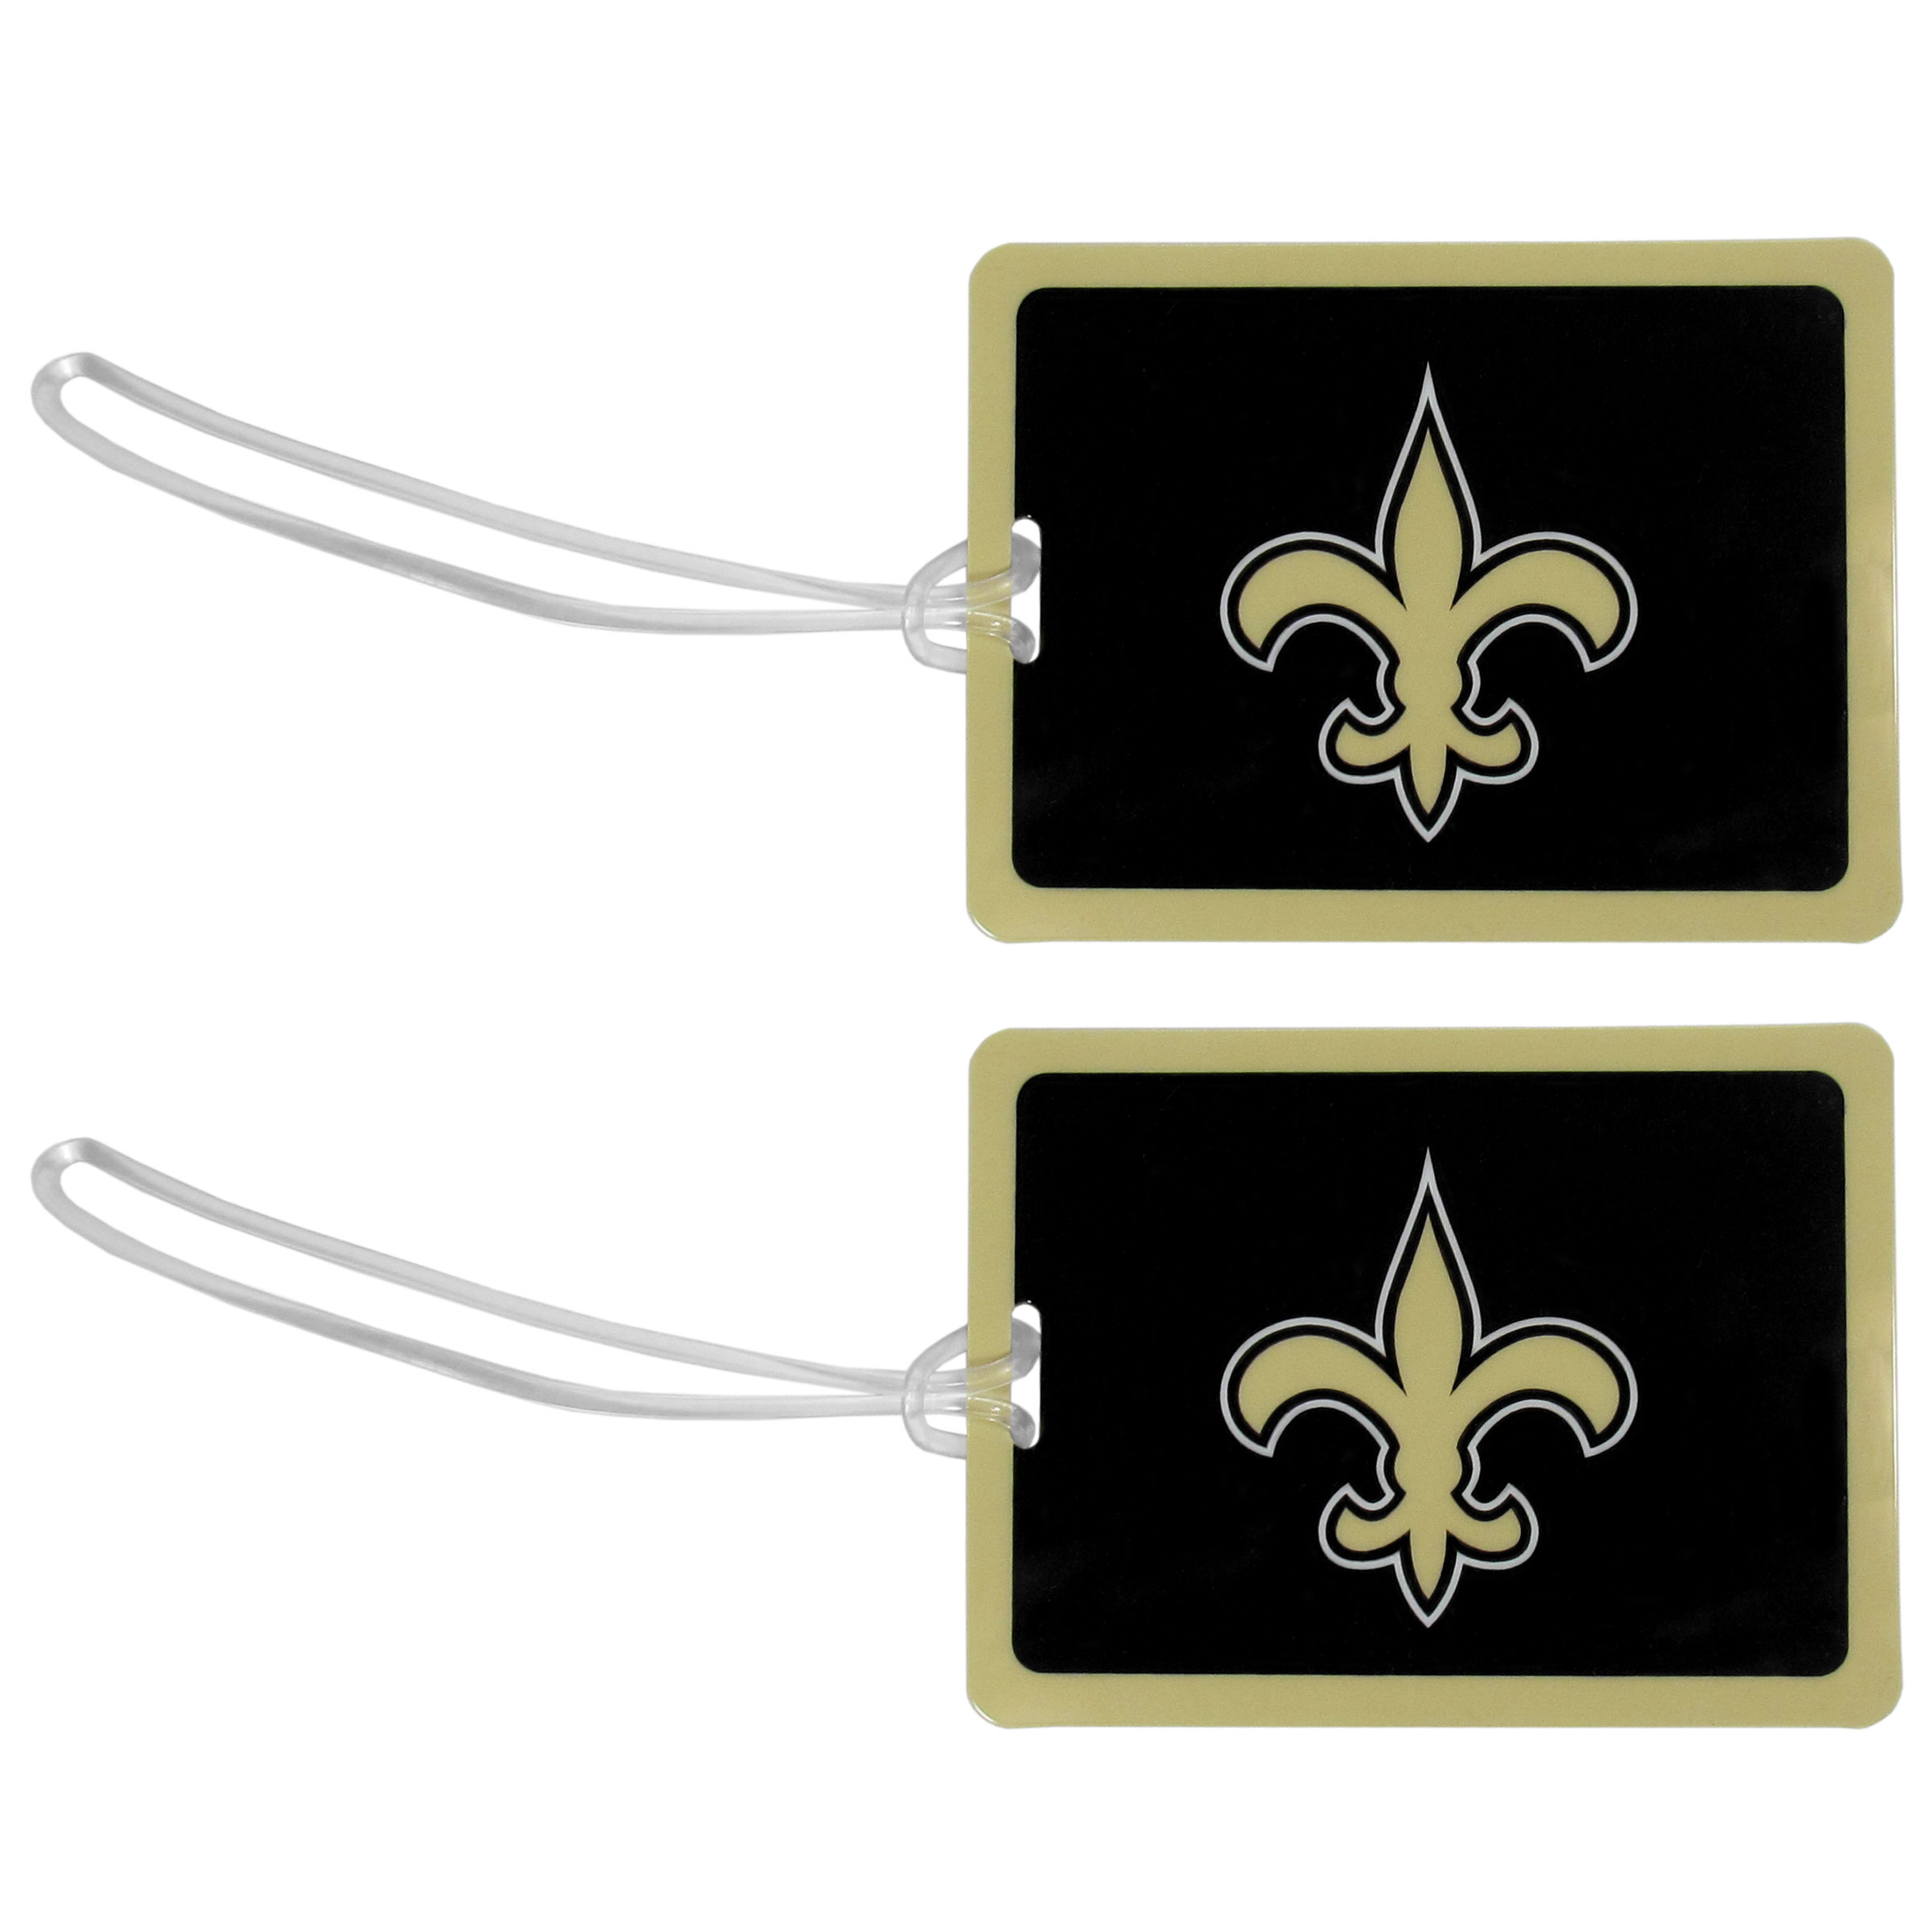 New Orleans Saints Vinyl Luggage Tag, 2pk - Tired of trying to spot your suitcase or bag in a sea of luggage? Try our large and colorful New Orleans Saints luggage tags. The tag is 4x3 inches and has a 5 inch cord to attach it easily to your bags, backpacks or luggage. The front of the tag features the team logo in a bright, team colored background and you can write you name, address and phone number on the back of the tag.